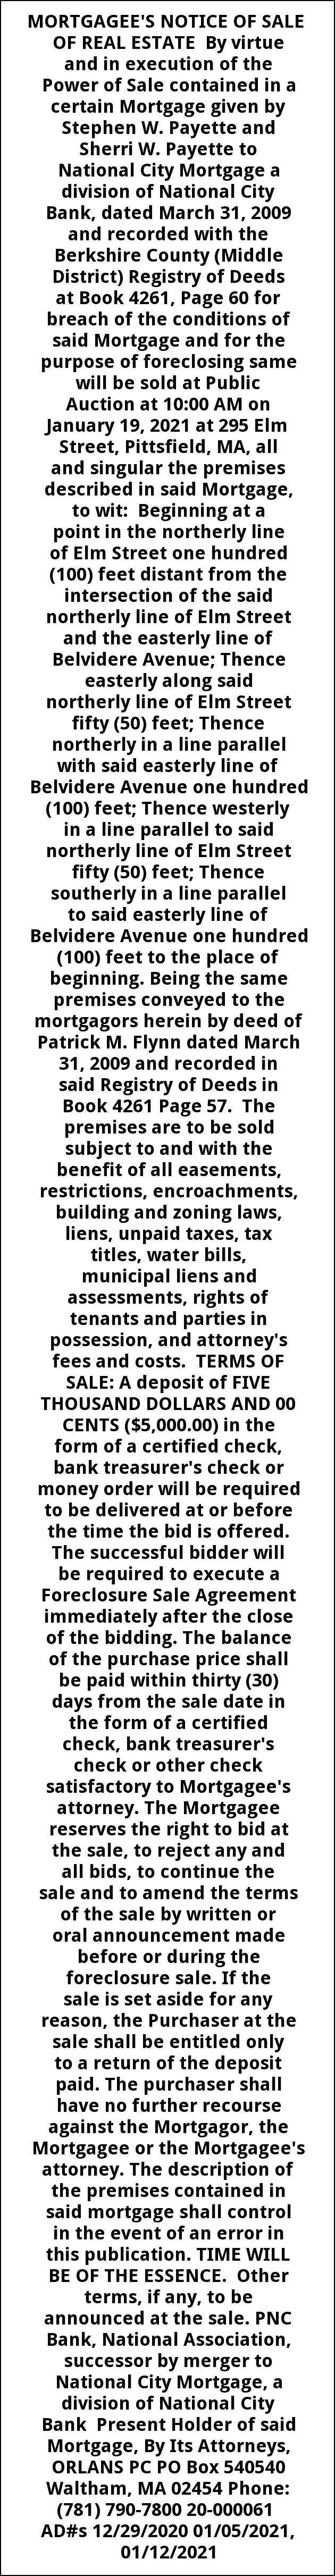 Mortagee's Notice Of Sale Of Real Estate